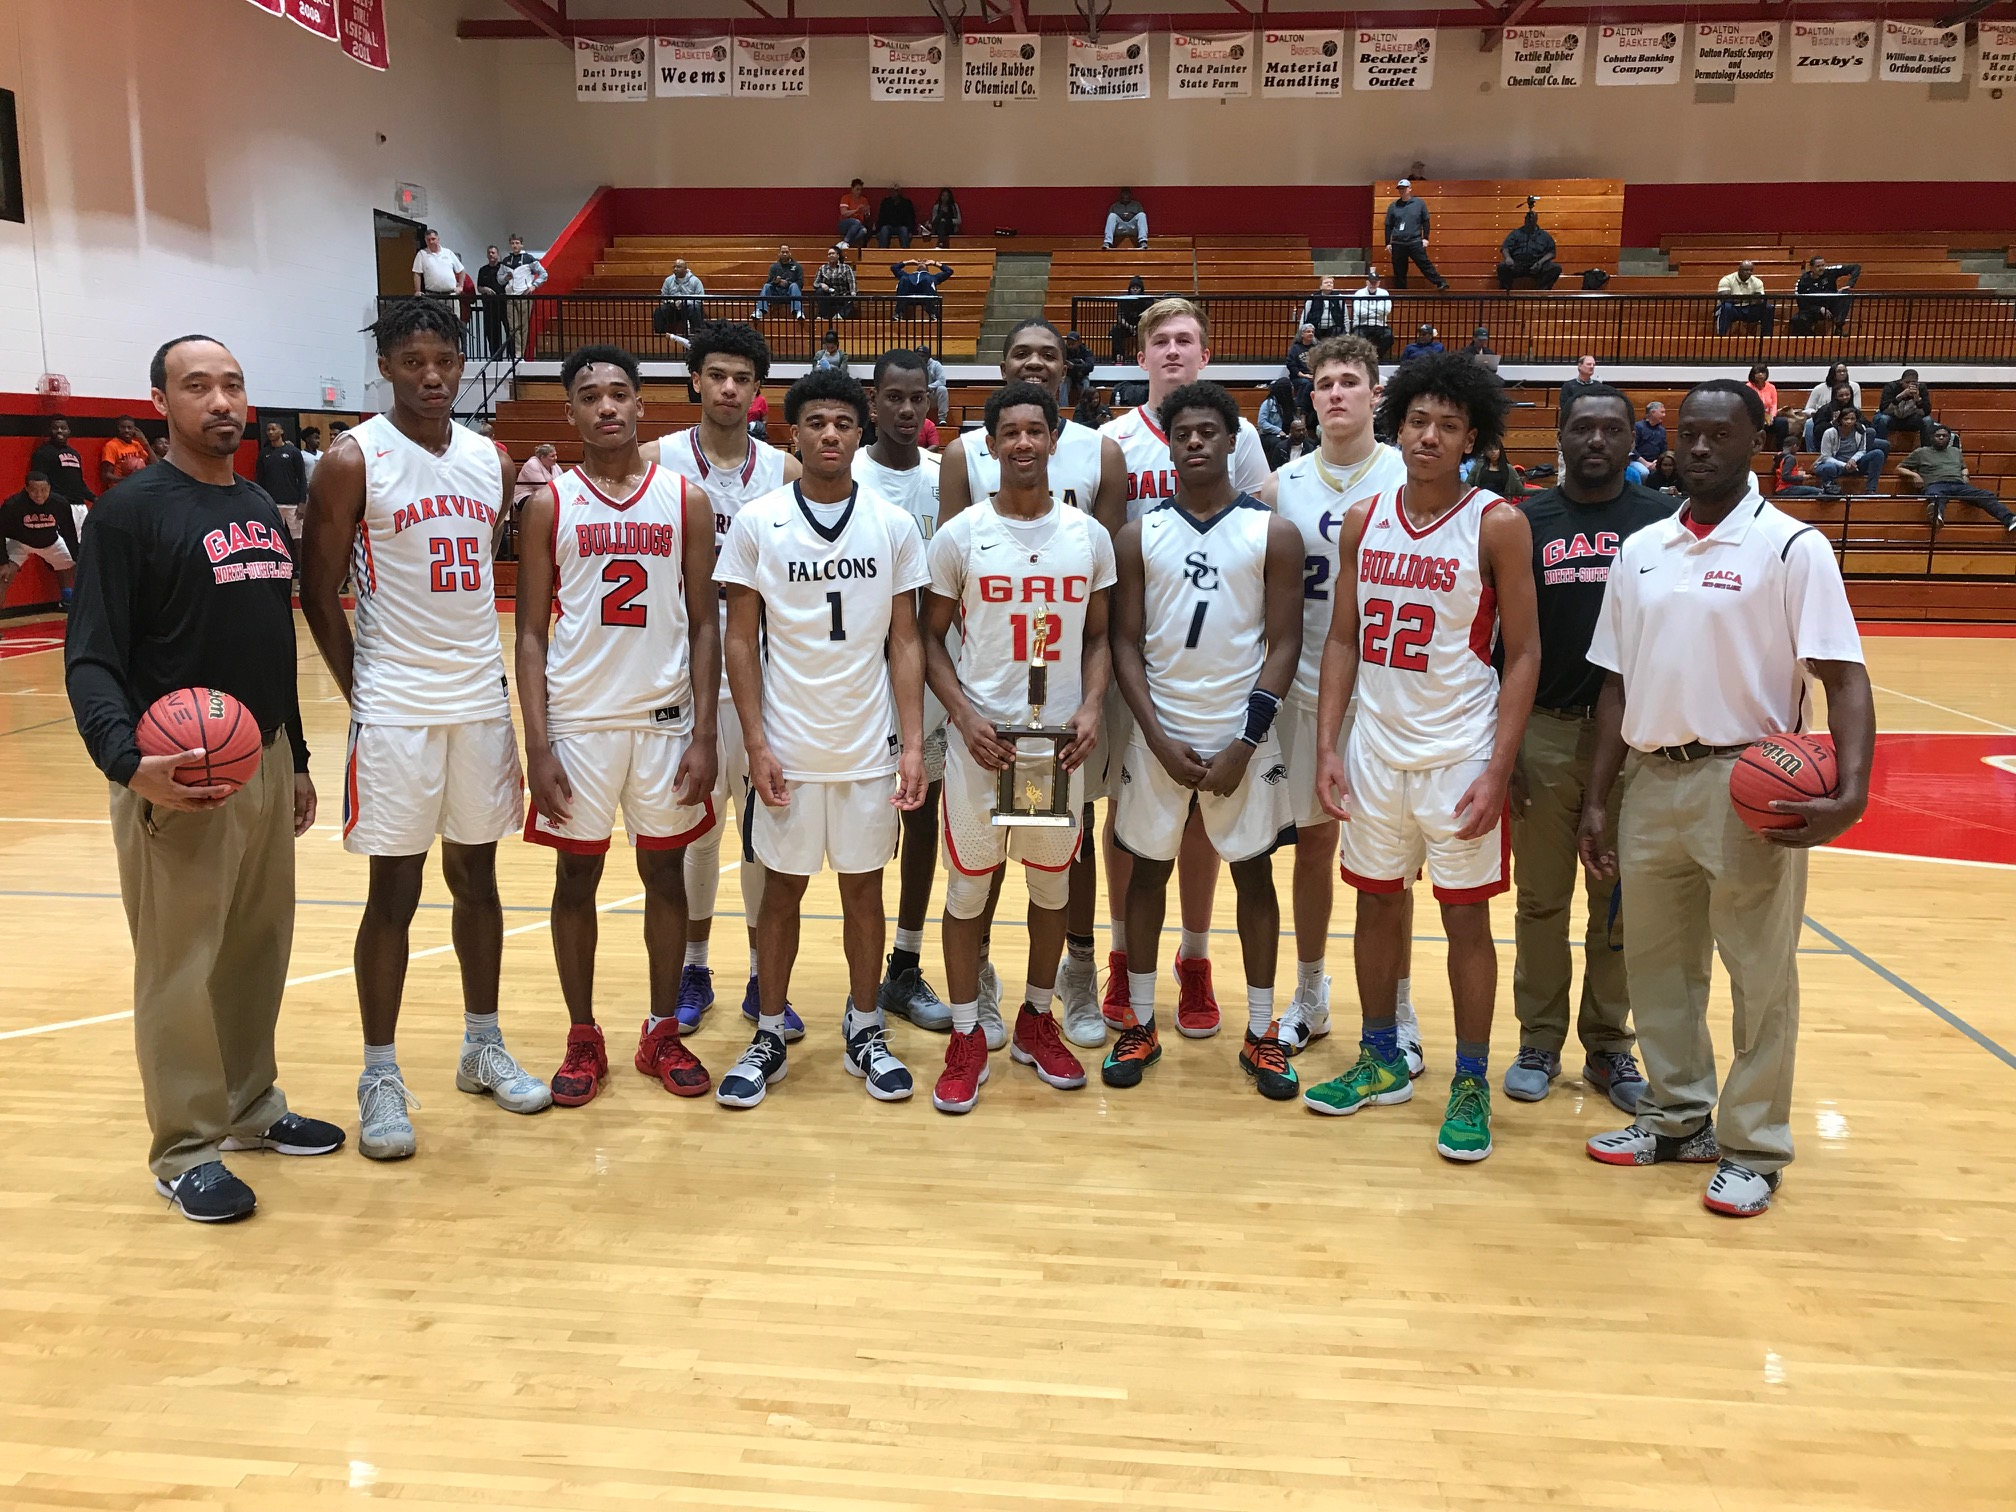 2018 GACA Junior Boys North All-Star Team